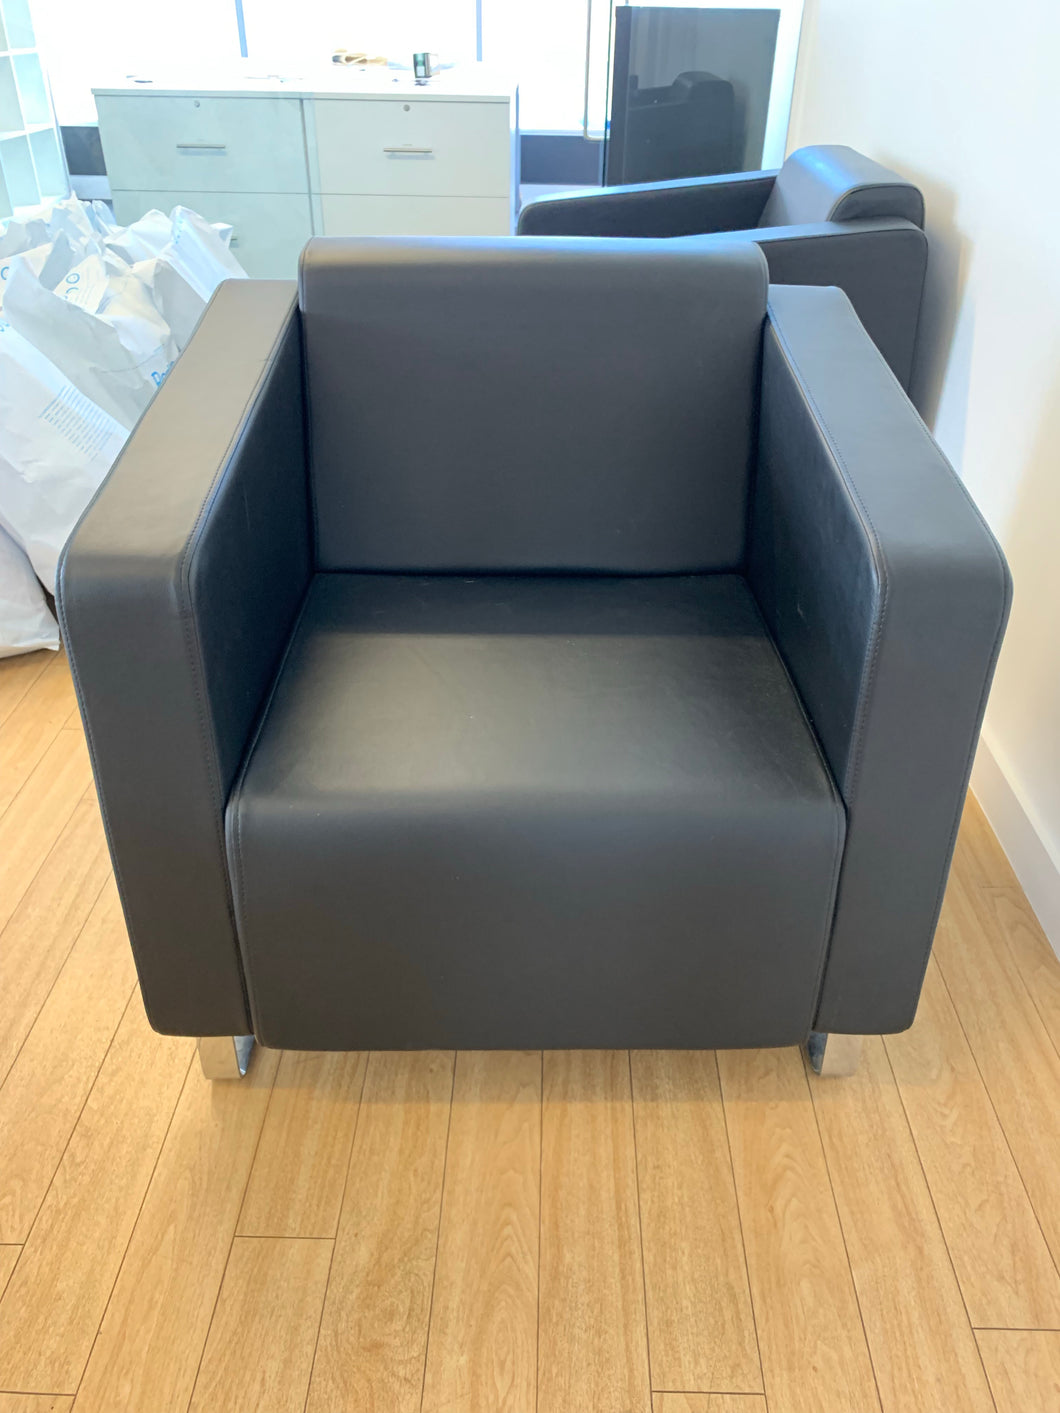 Bejot Leather Faced Reception Chair - Flogit2us.com